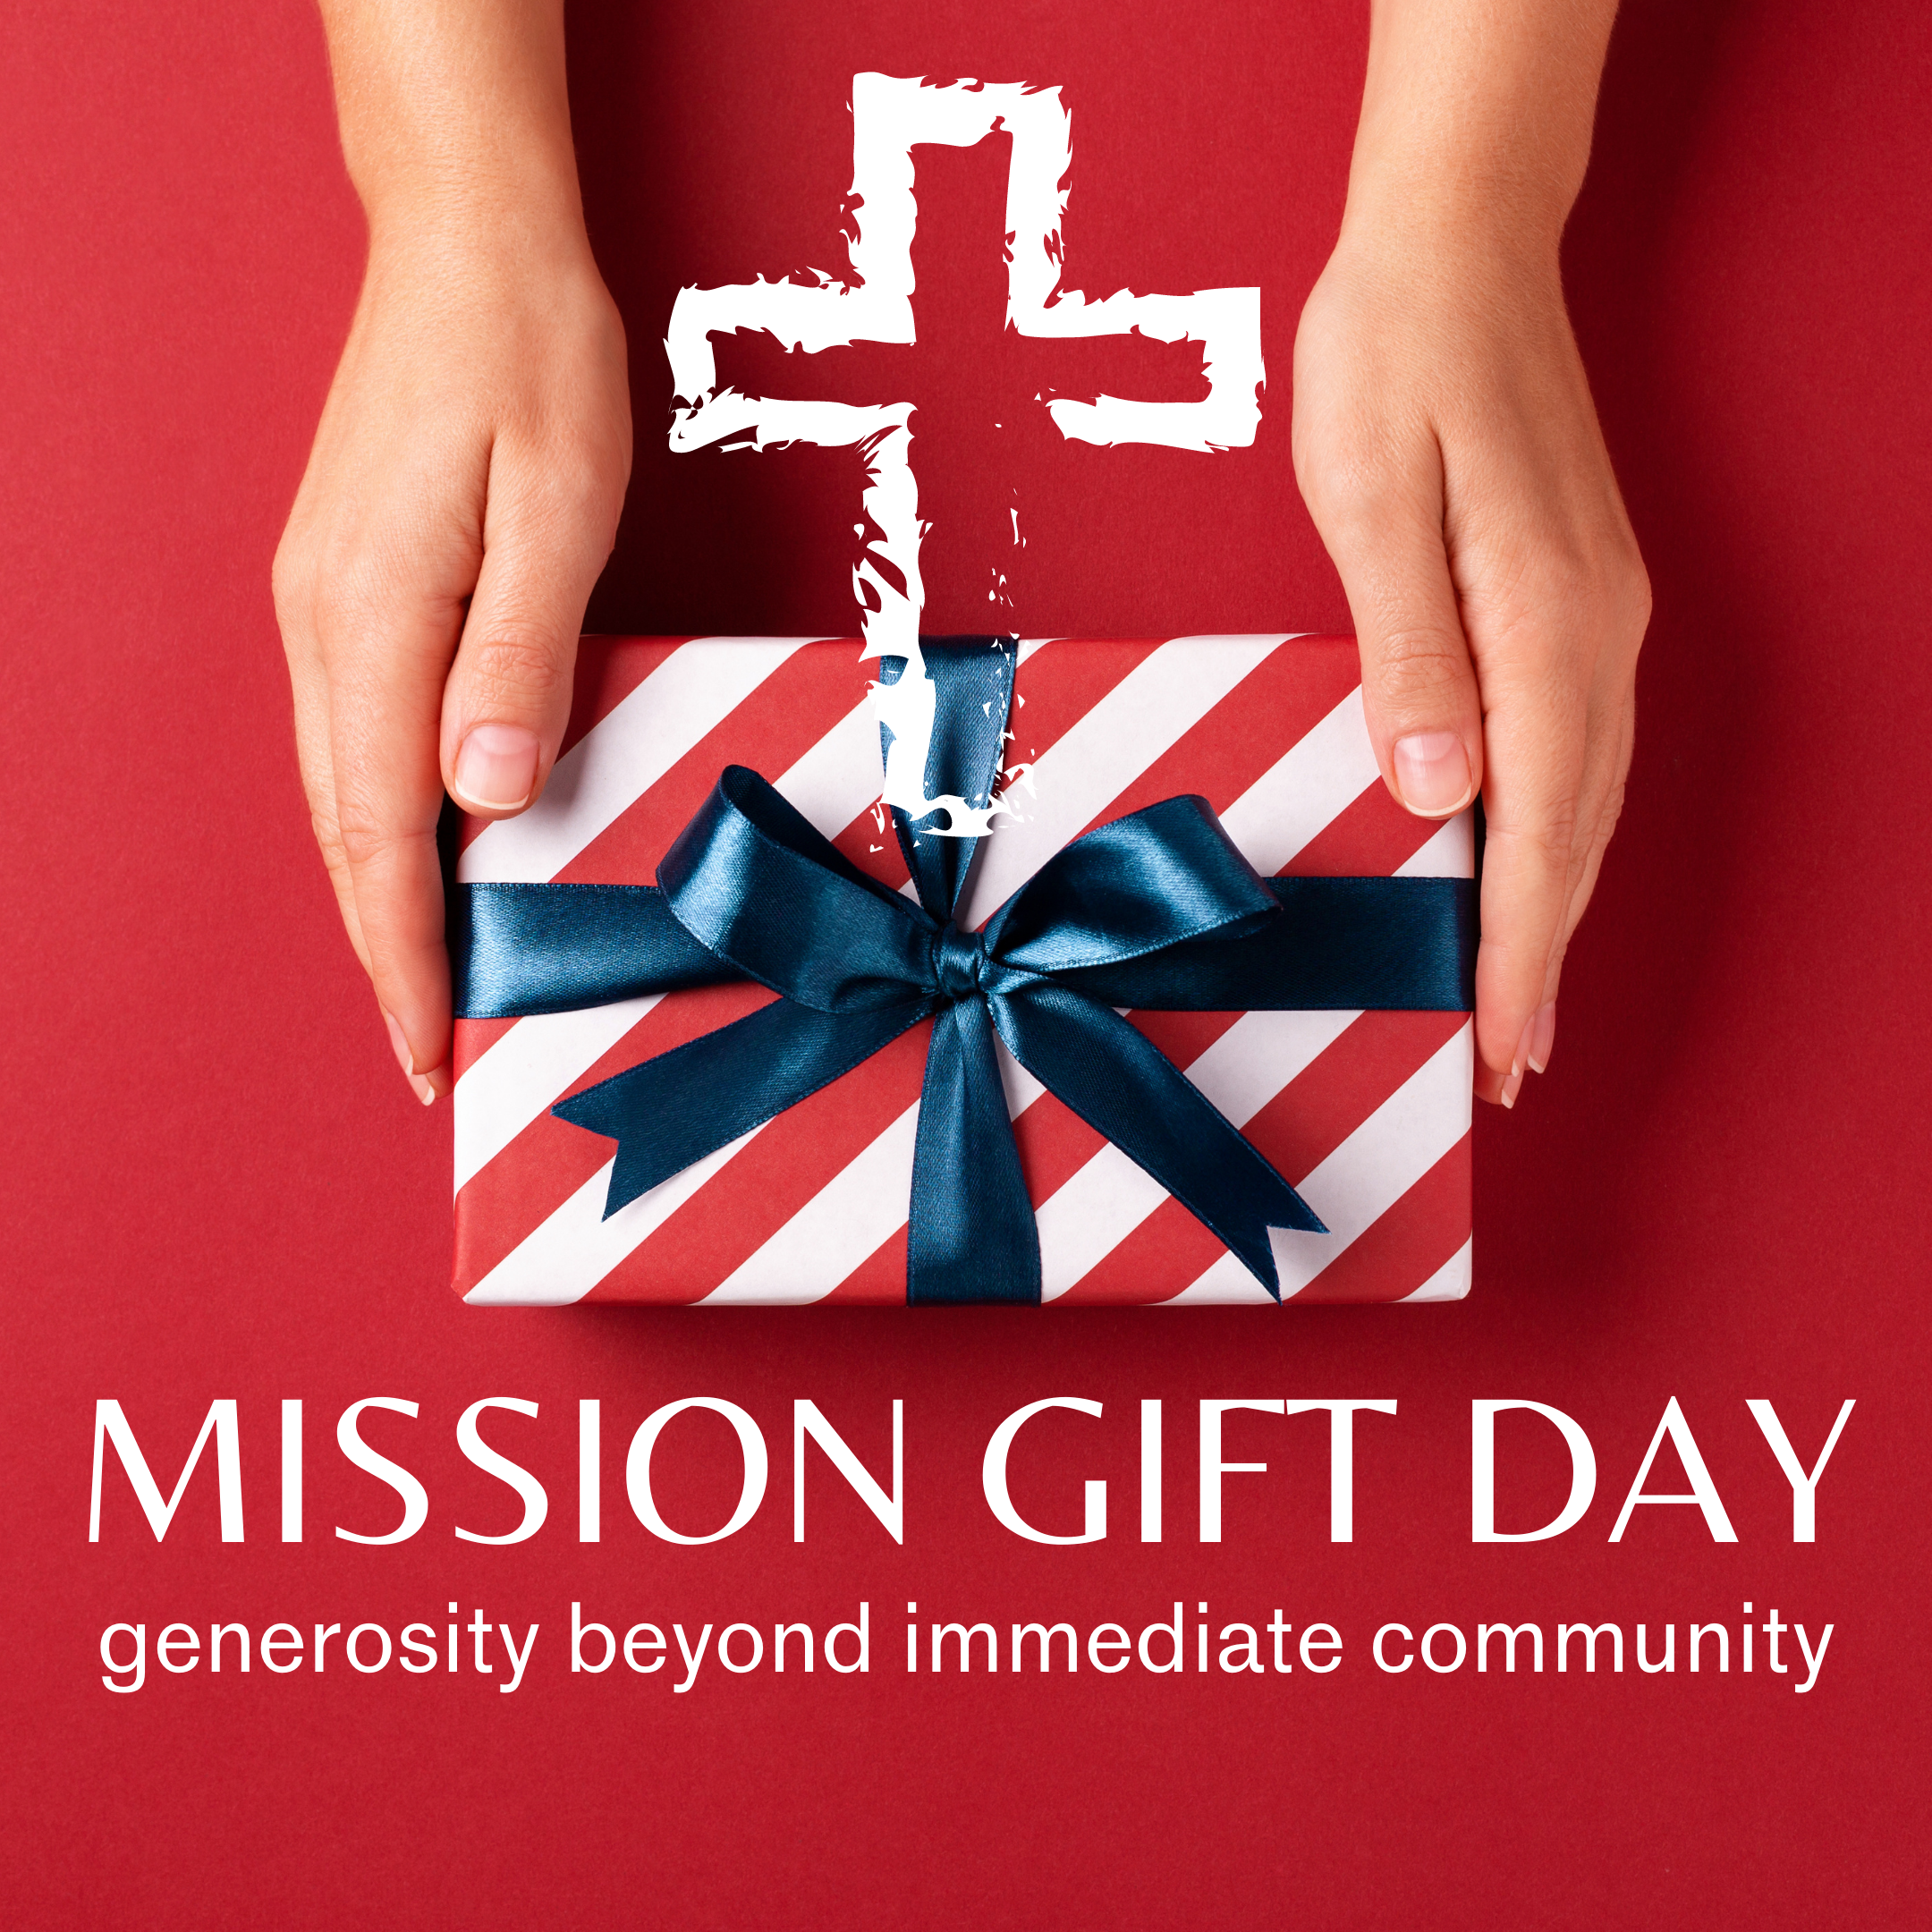 Mission Gift Day